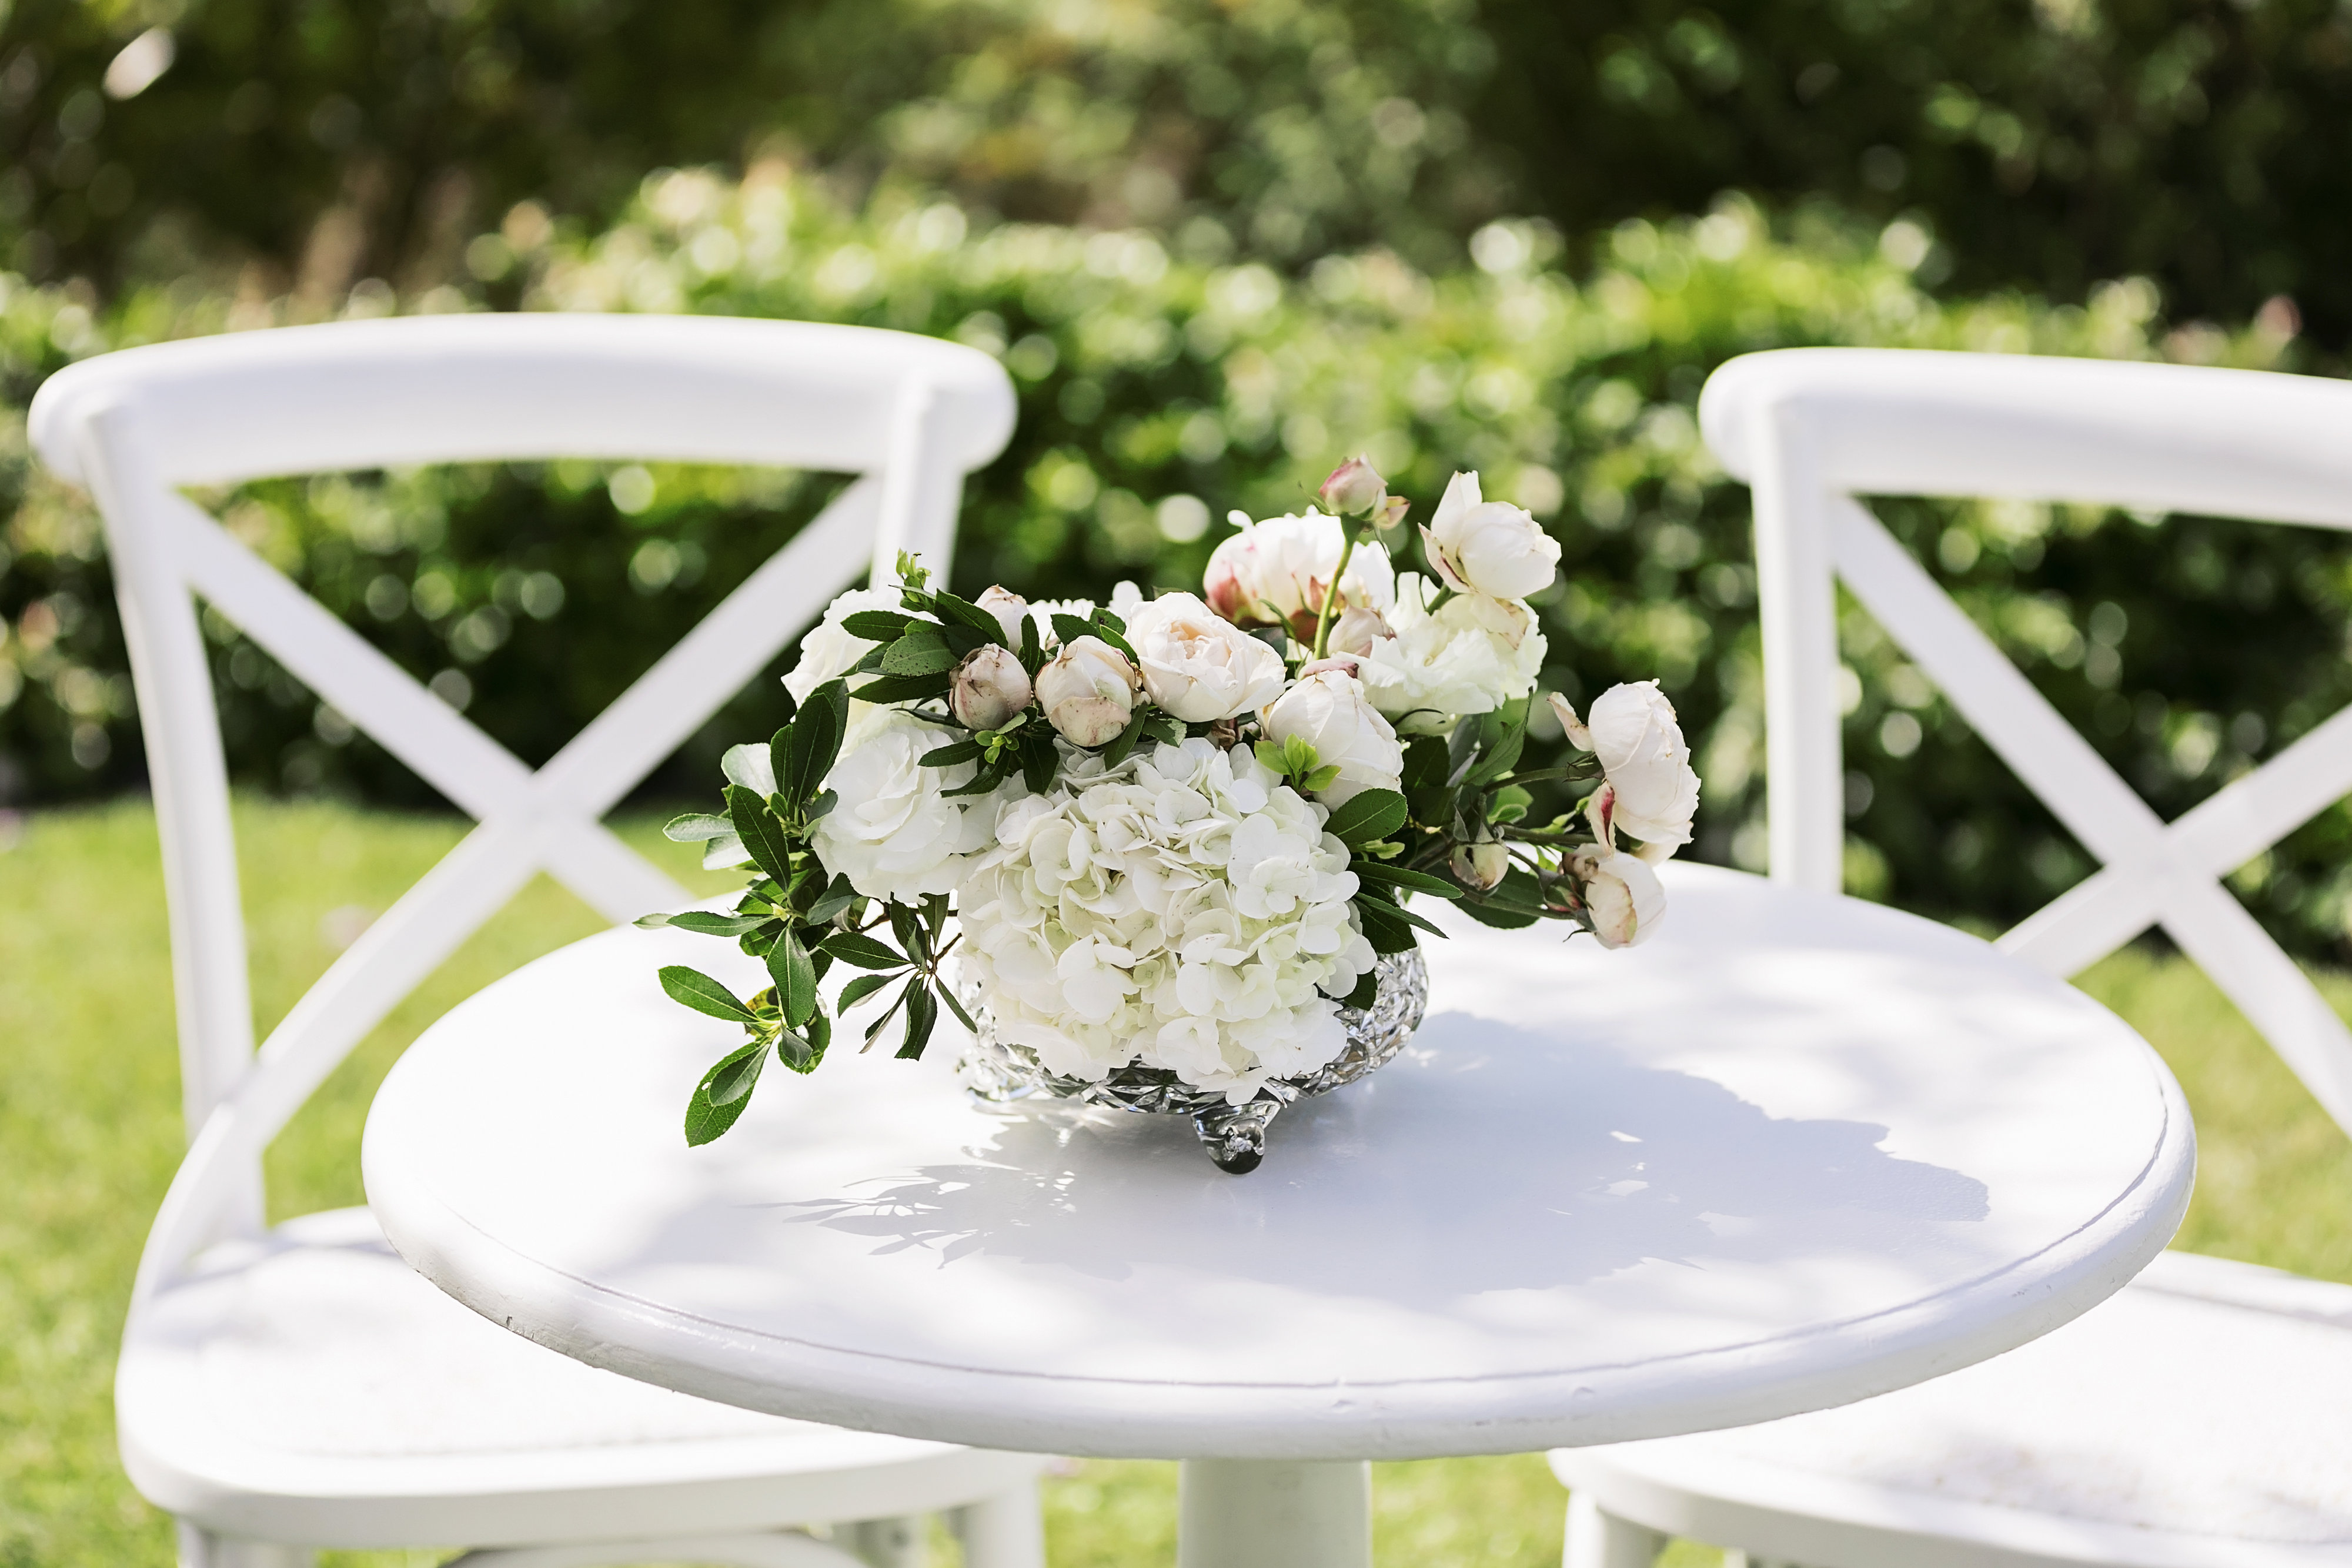 Registry design with lush greenery and white blooms